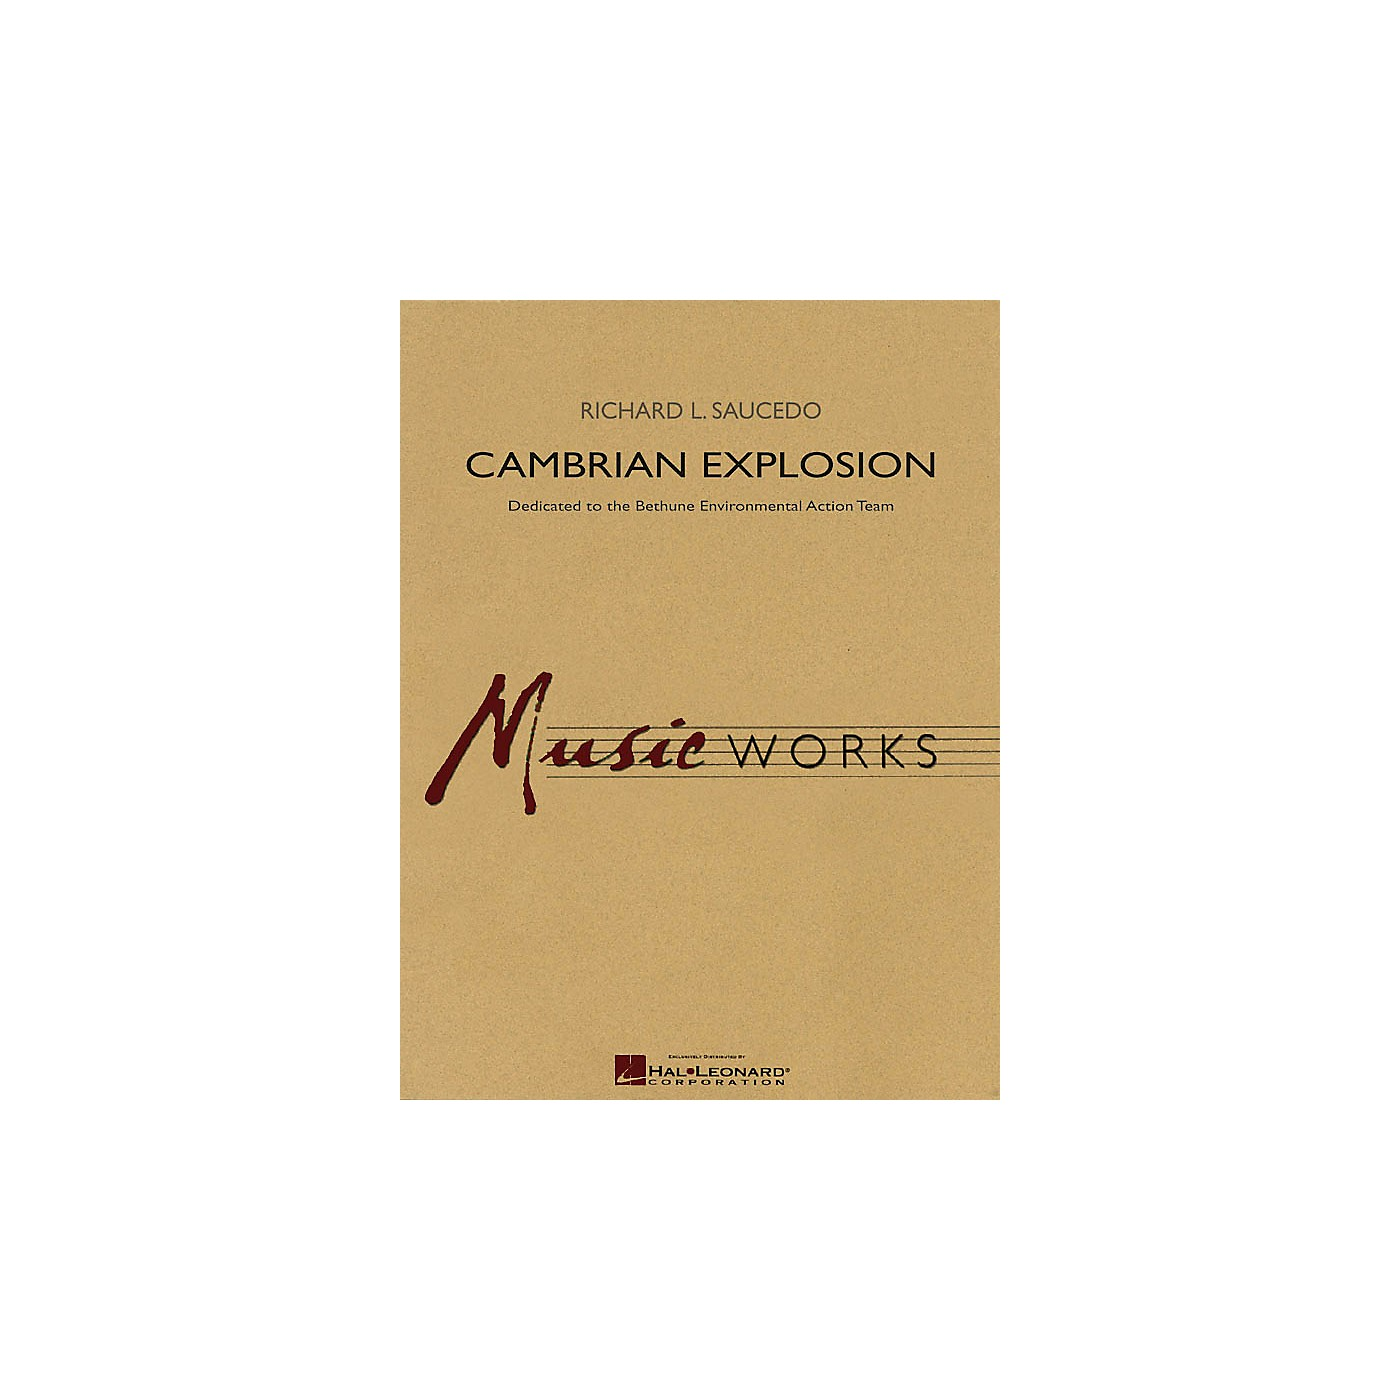 Hal Leonard Cambrian Explosion Concert Band Level 5 Composed by Richard L. Saucedo thumbnail